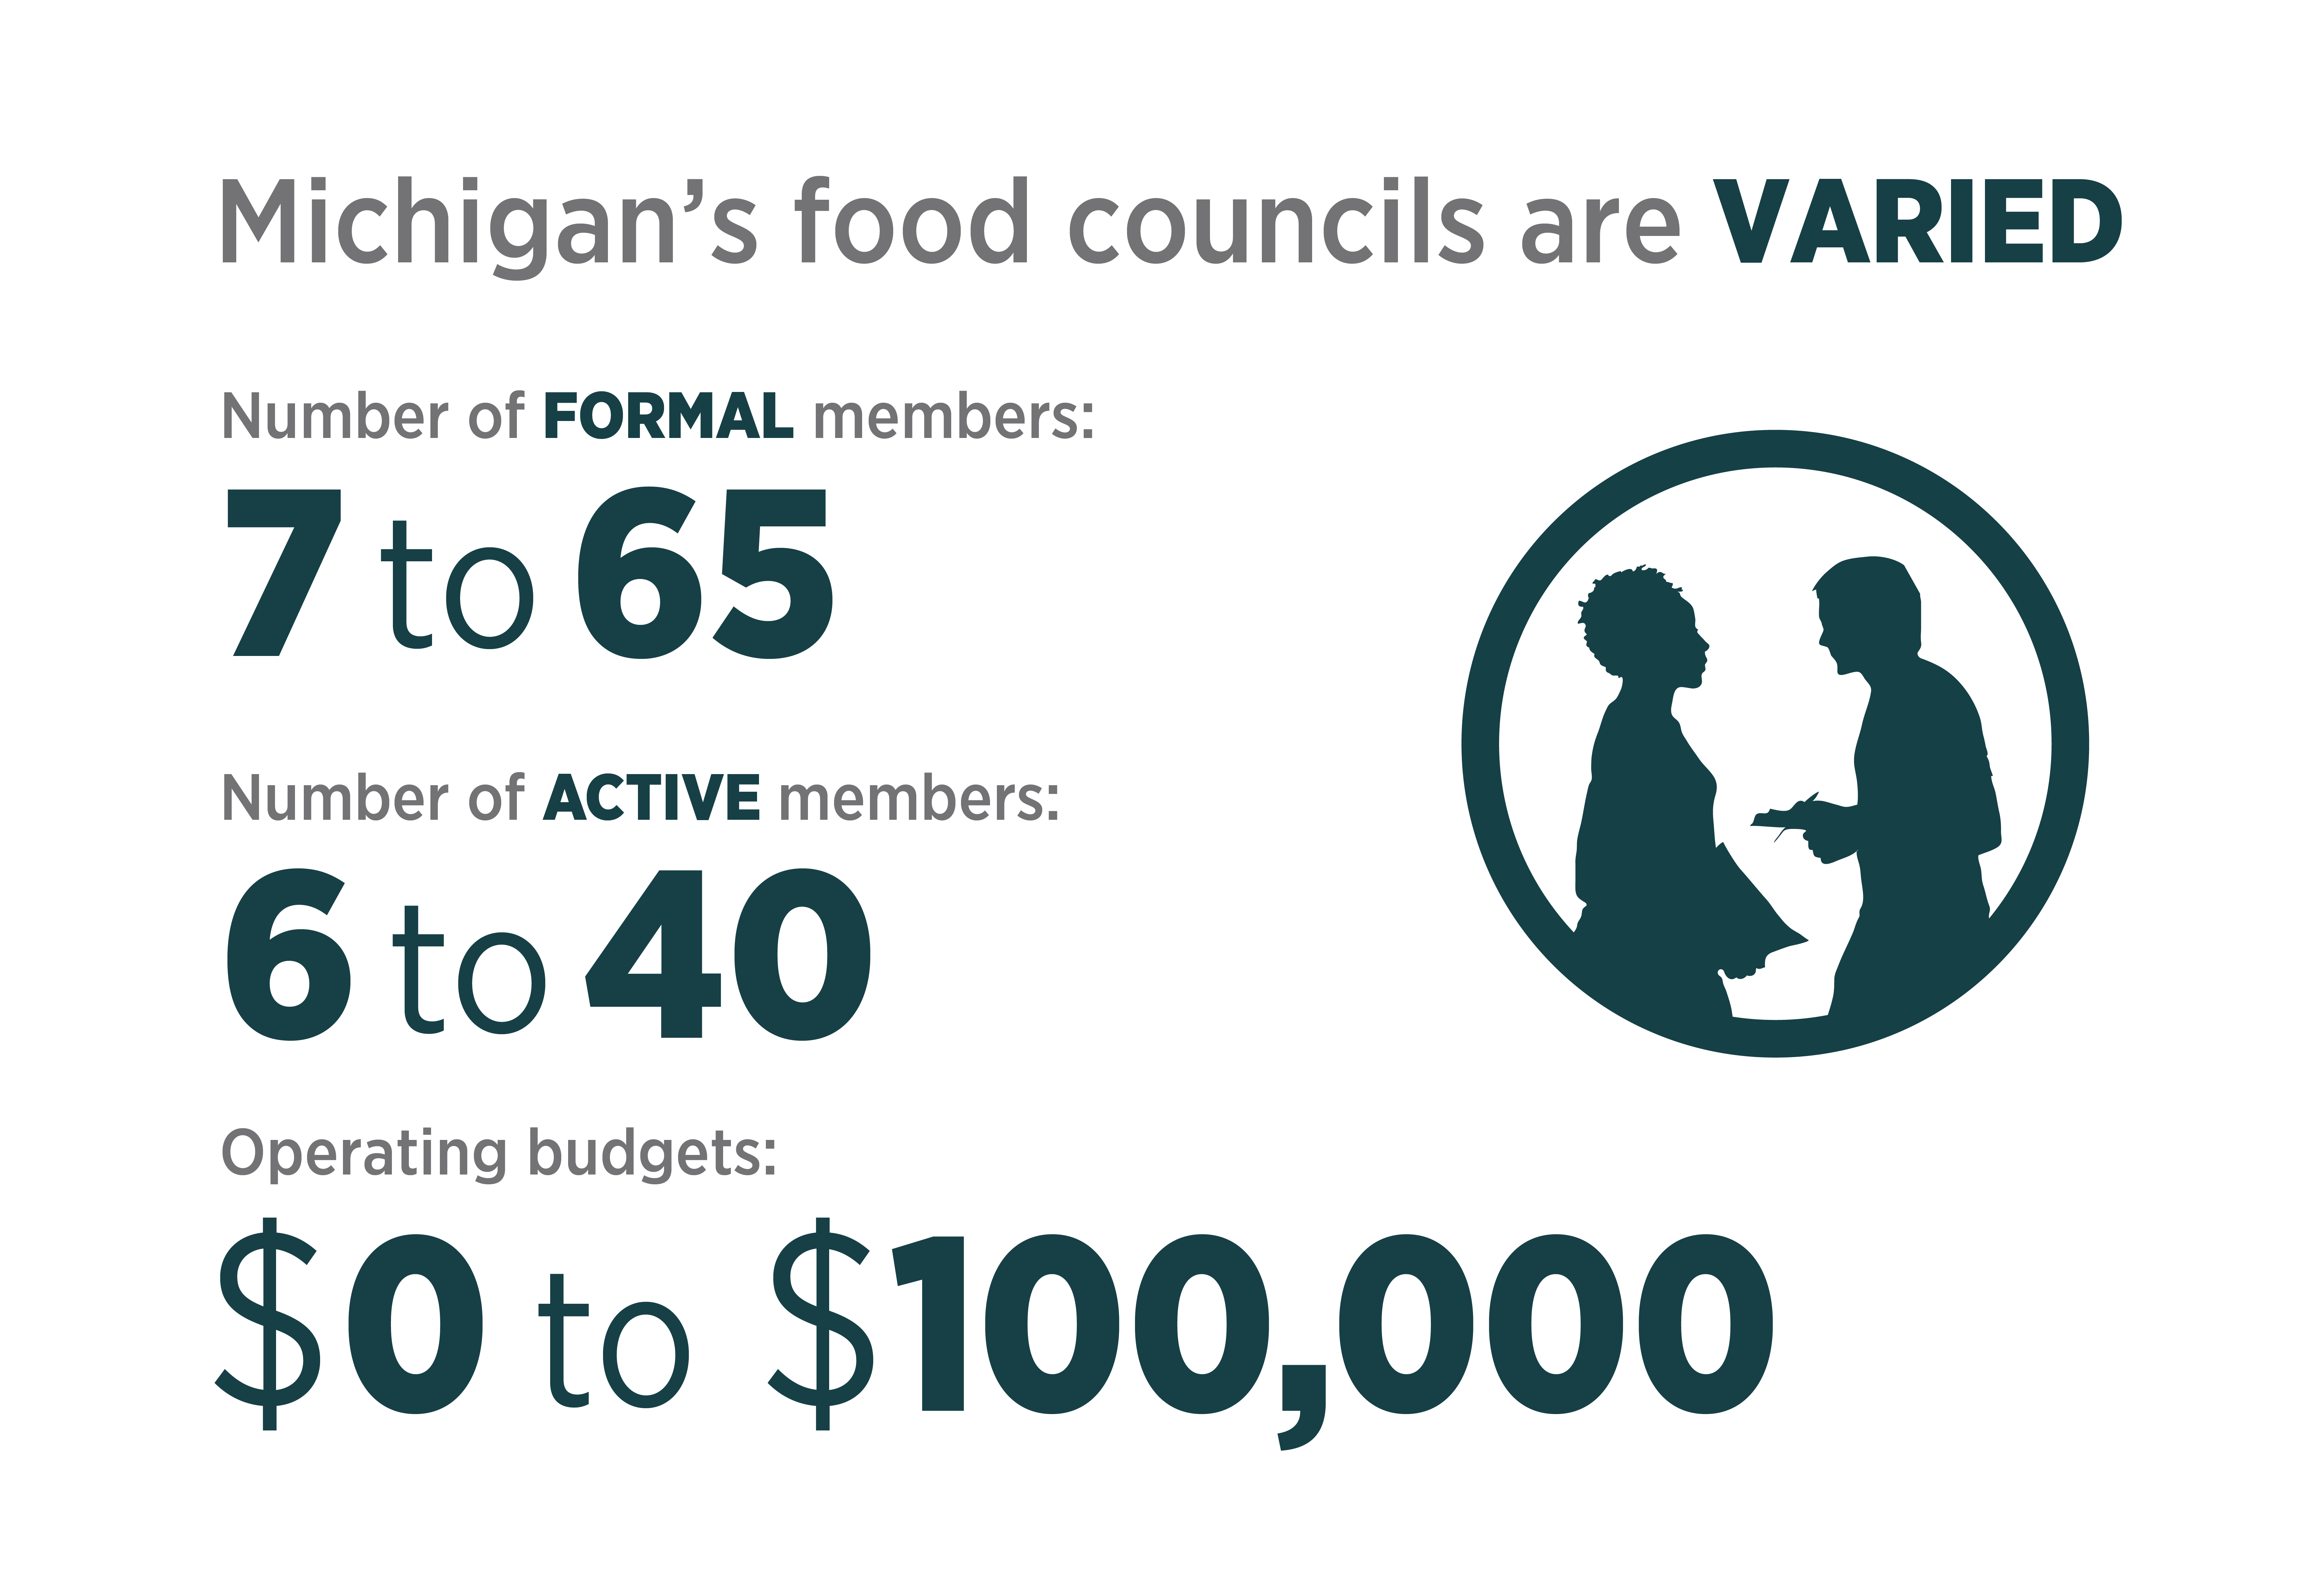 Michigan's food councils are varied